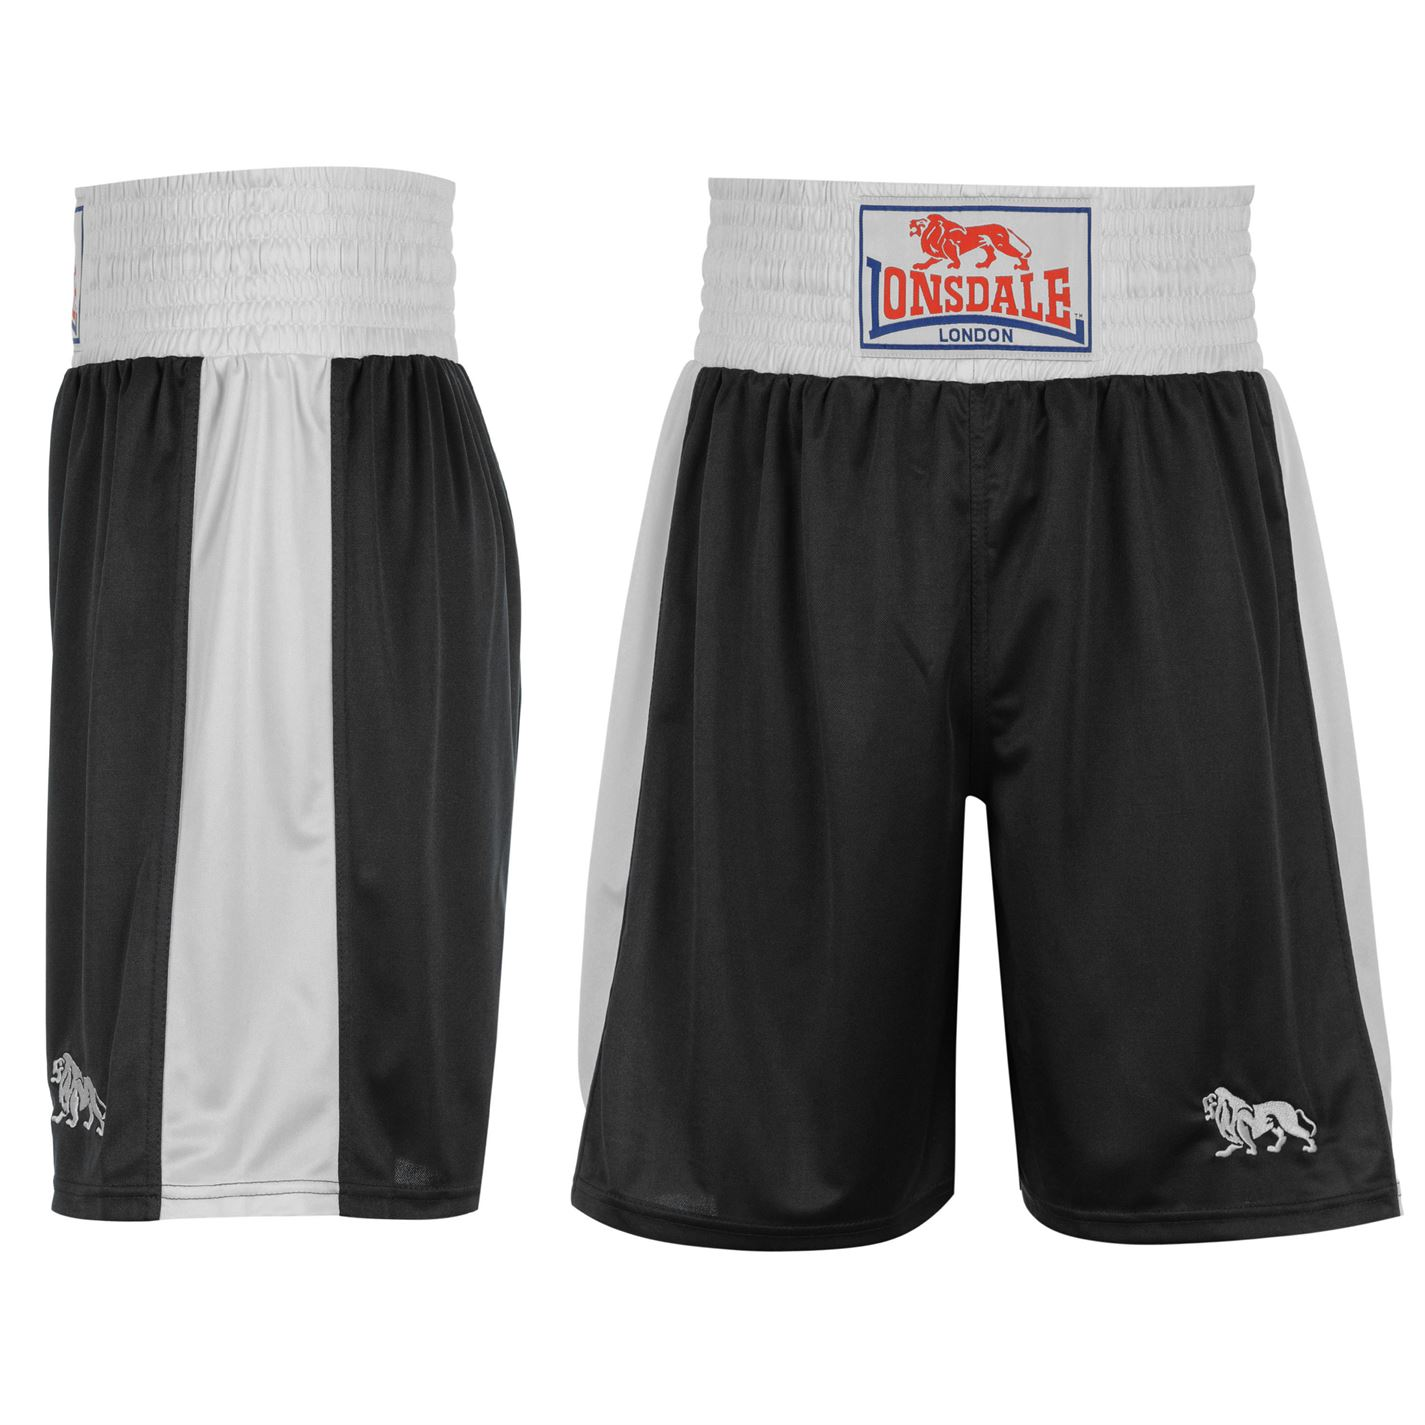 8c79b7a9311427 Lonsdale Boxing Shorts